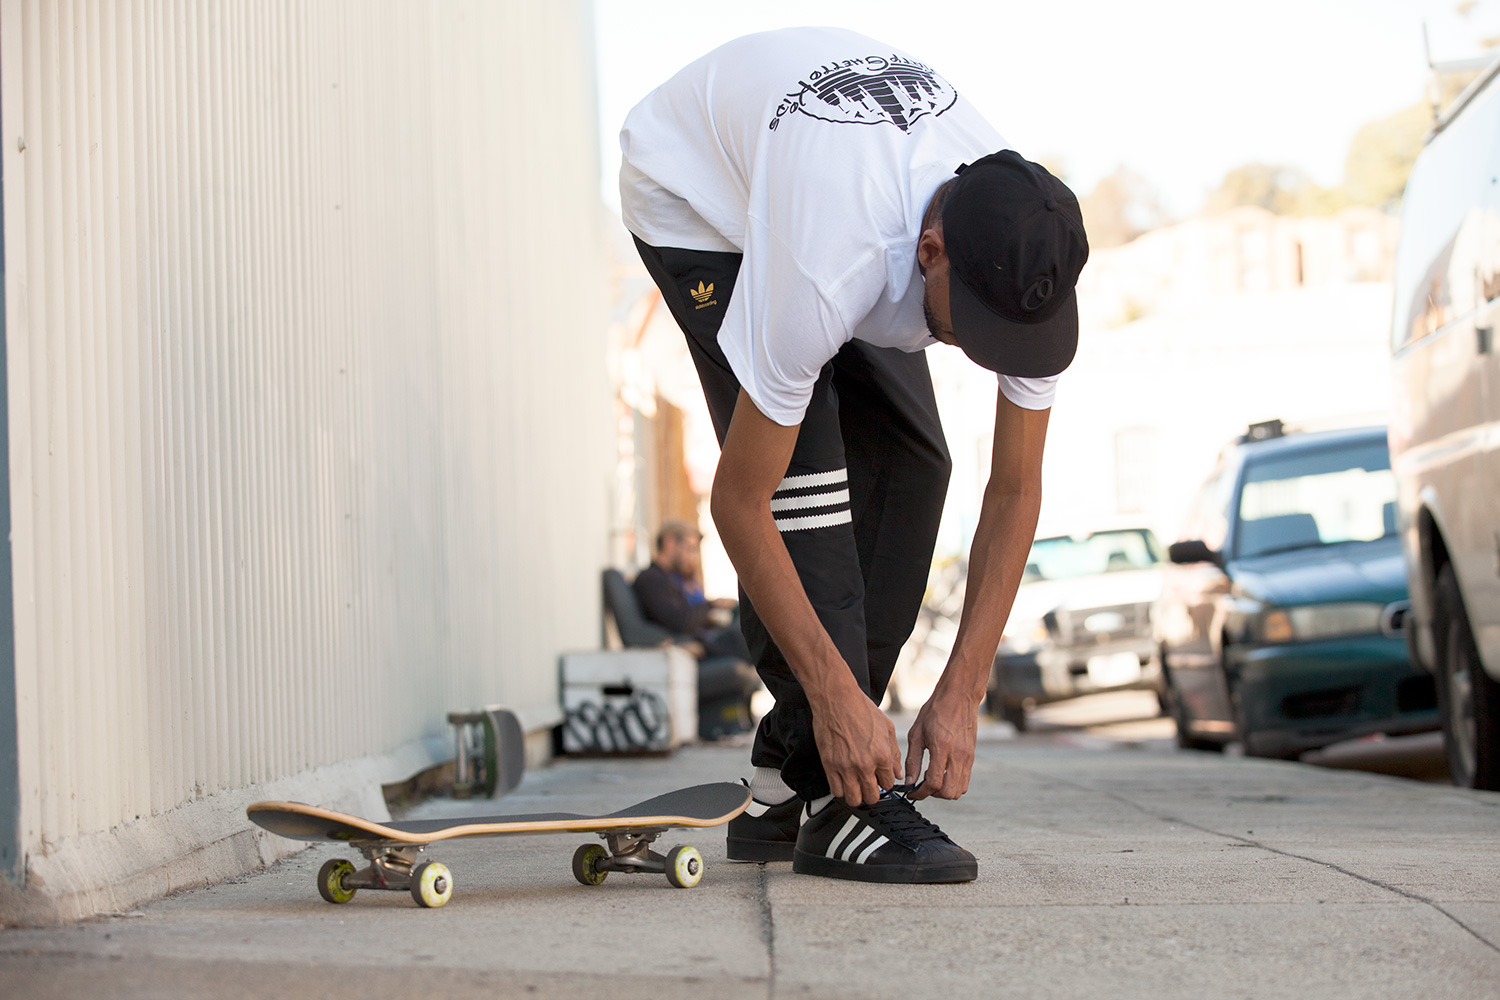 adidas Skateboarding x DGK ensemble pour une collection capsule